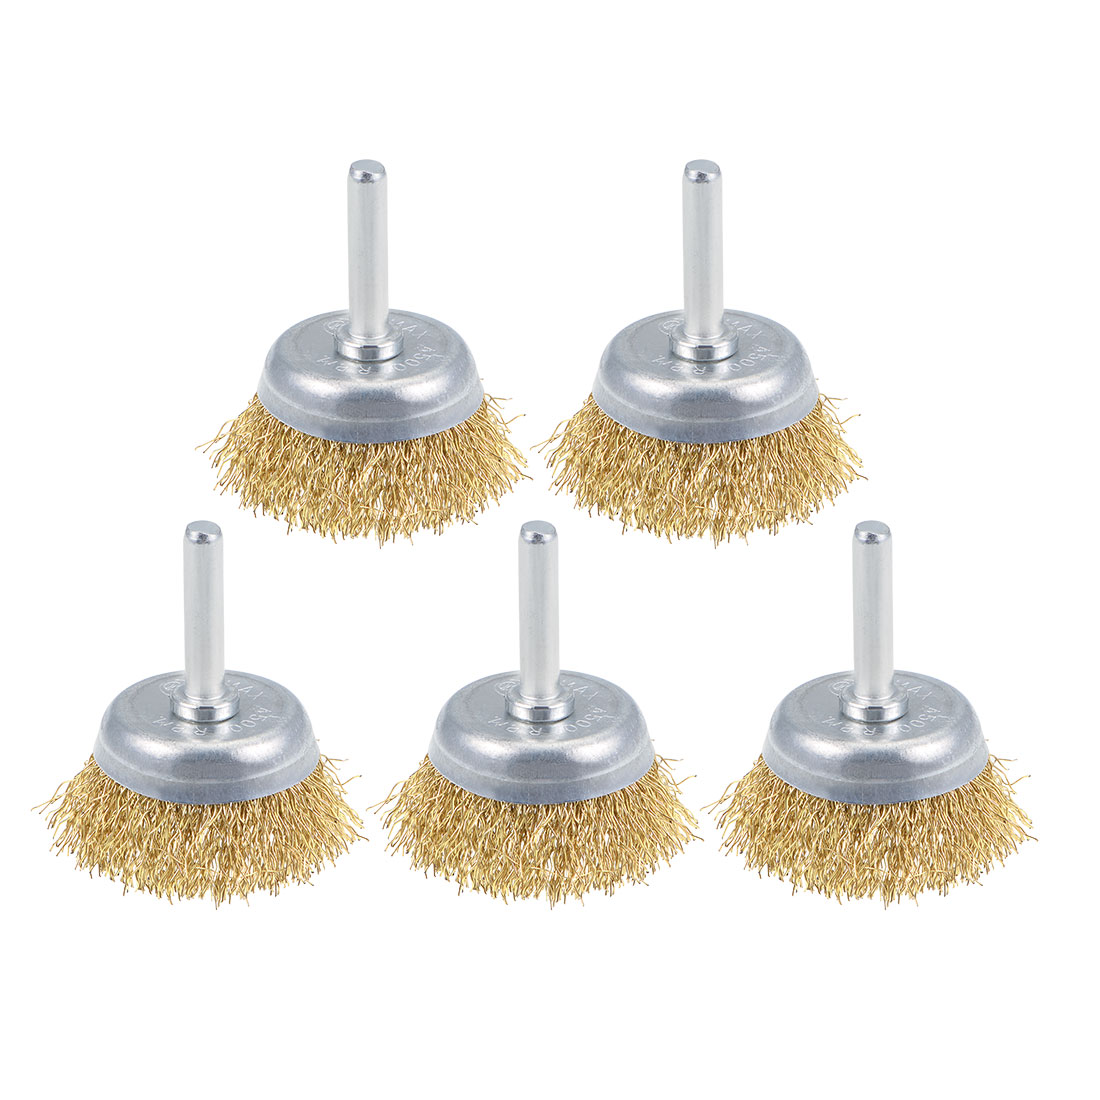 45mm Wire Cup Brush Brass Plated Crimped Steel with 1/4-inch Shank 5 Pcs